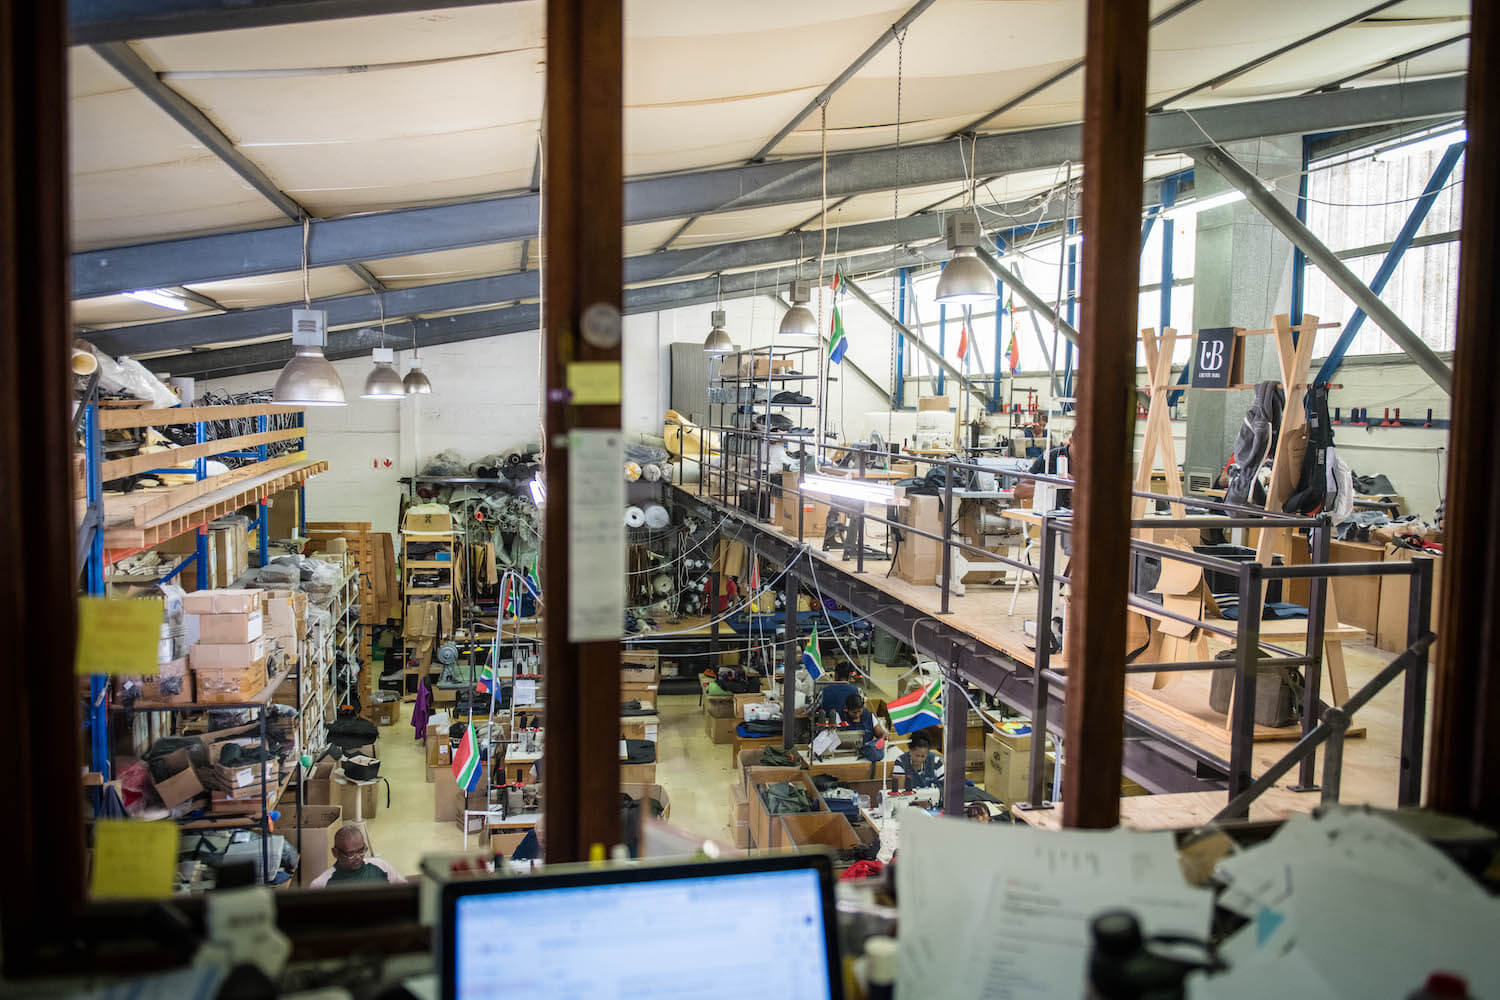 The view of the factory floor at Ubuntu Baba.